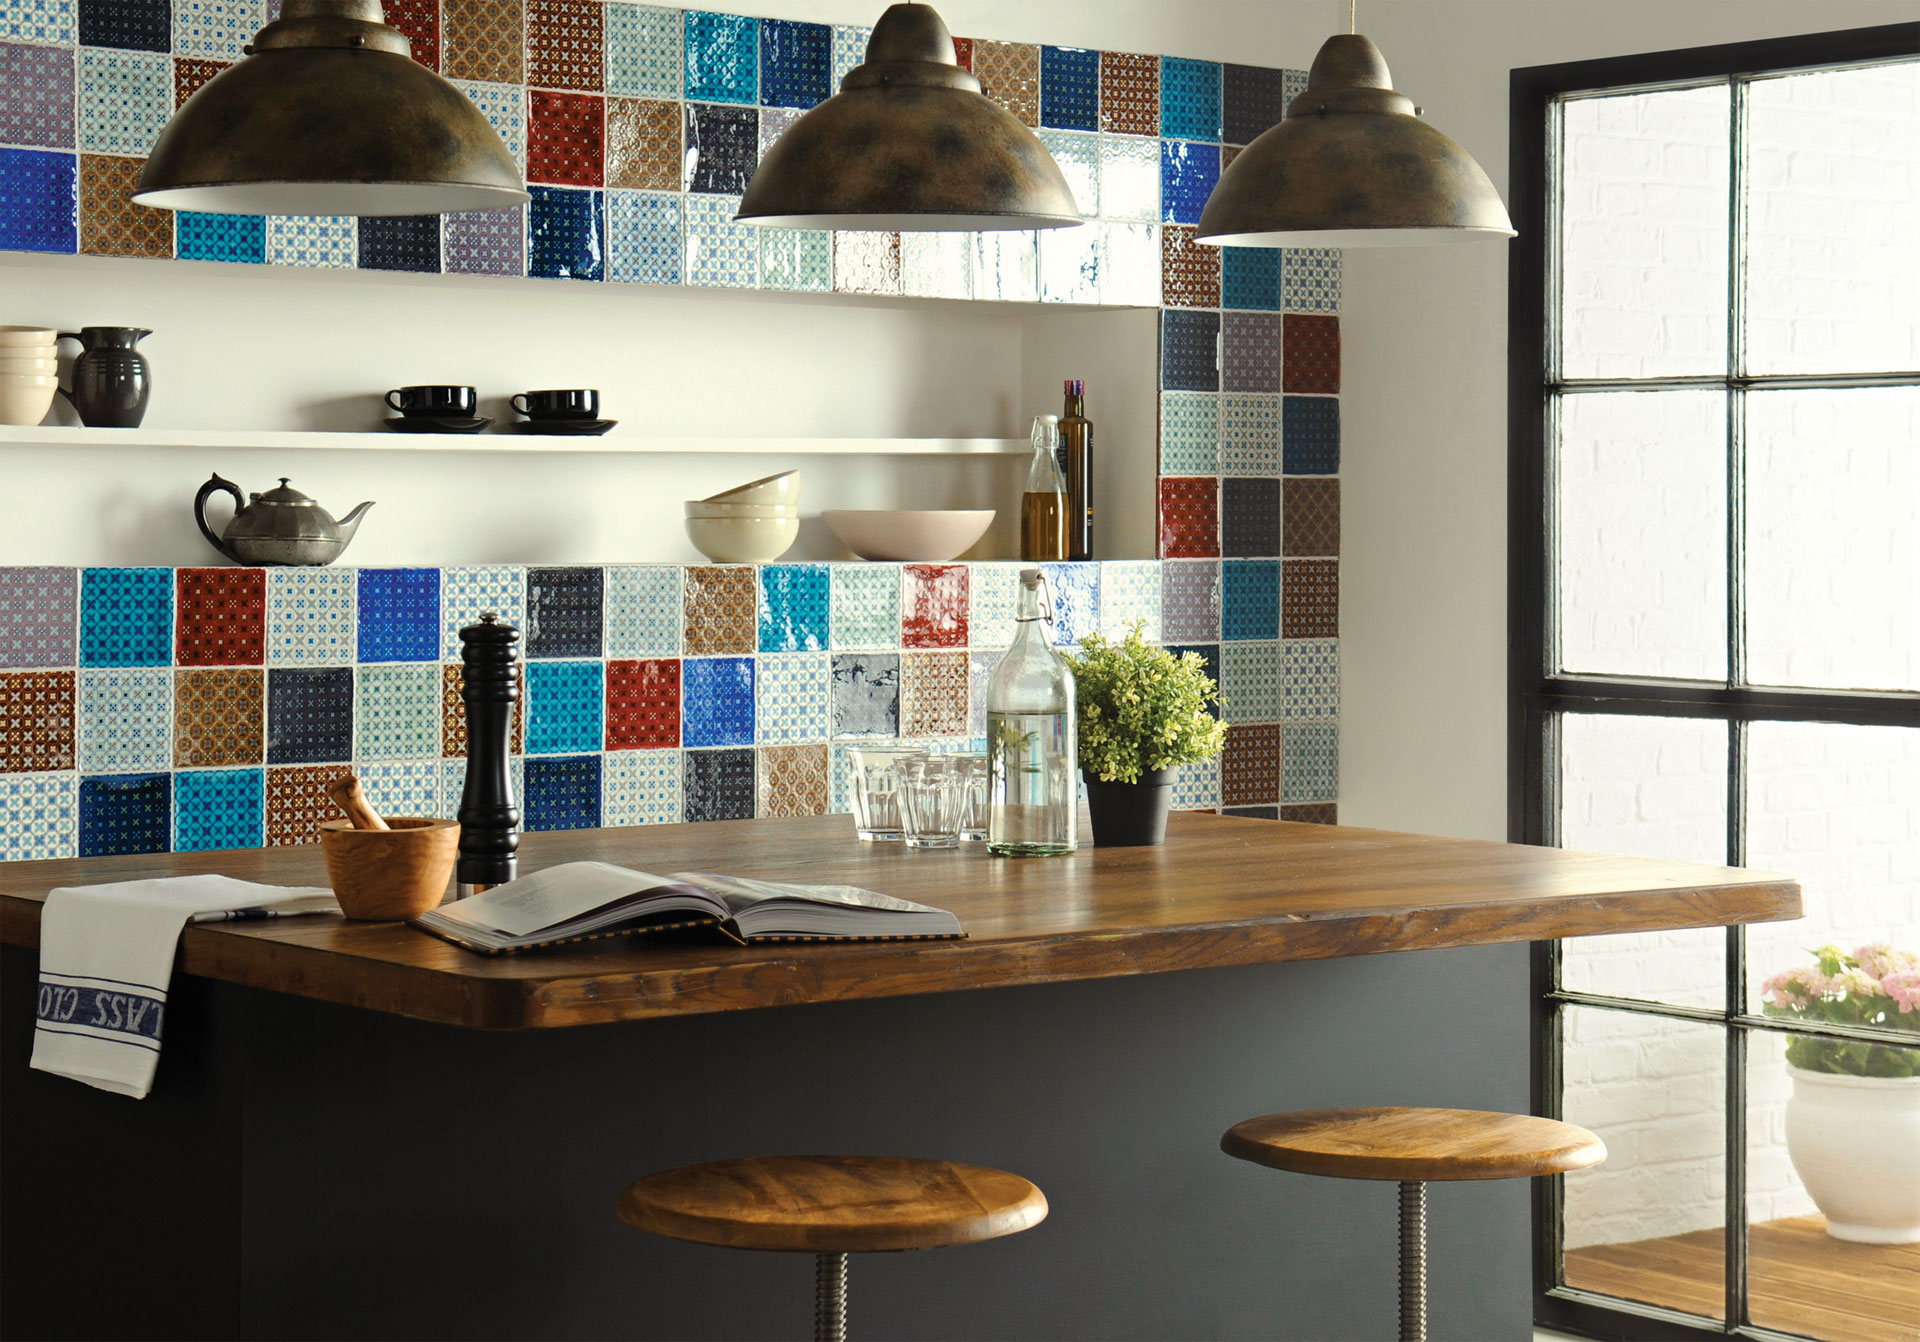 Contemporary & Kitchen Tiles Ideas